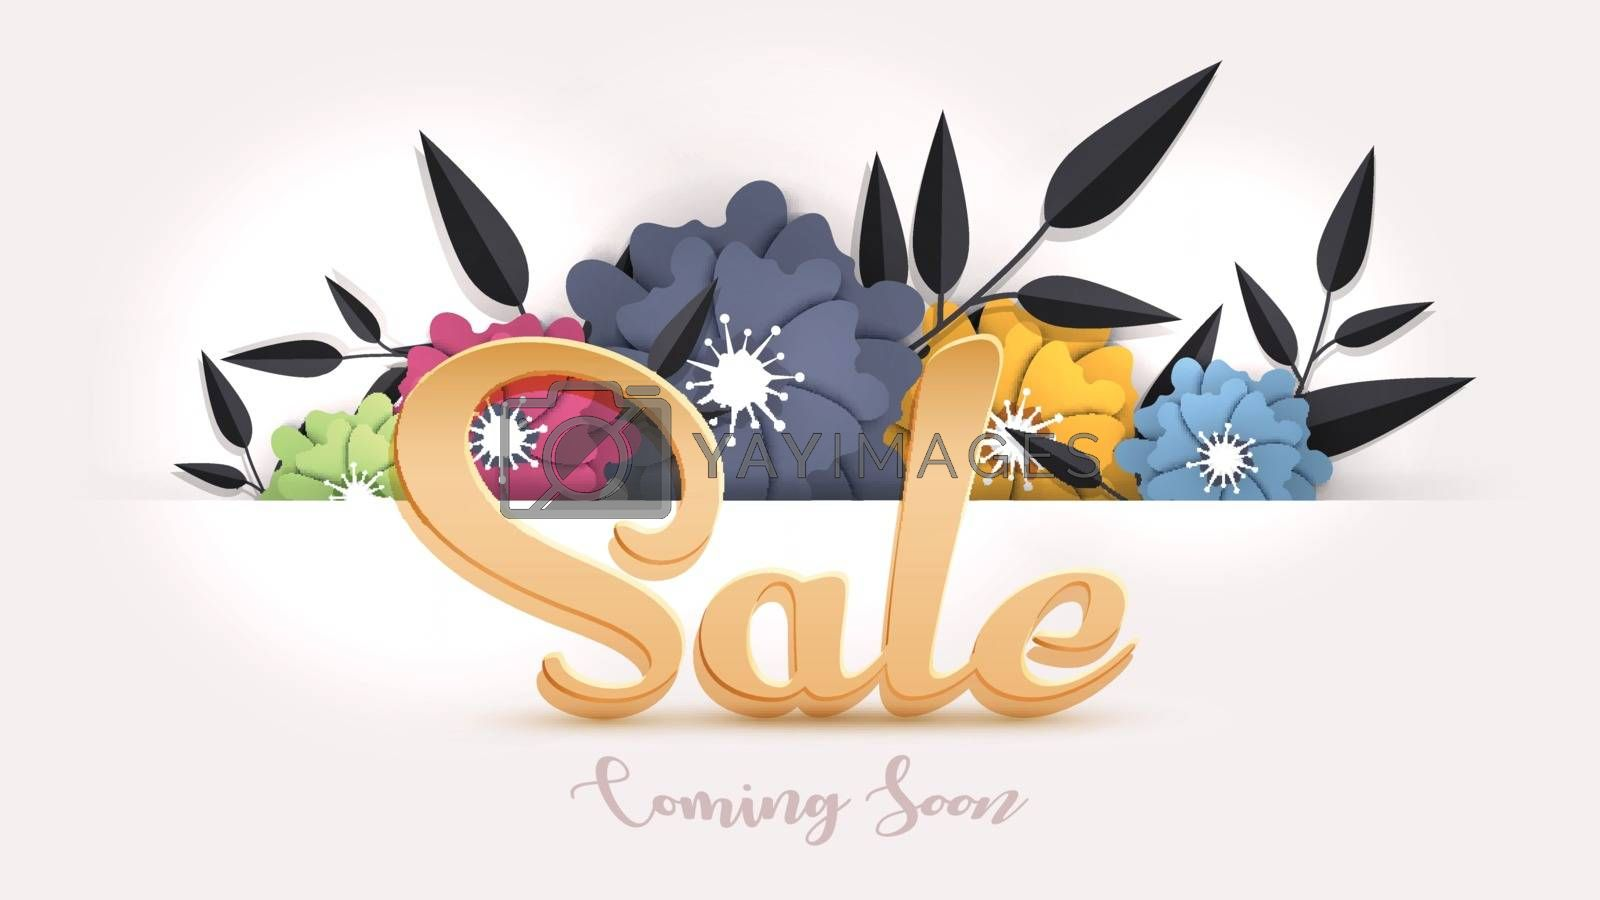 Royalty free image of Sale banner or poster design decorated with paper cut flowers on by aispl